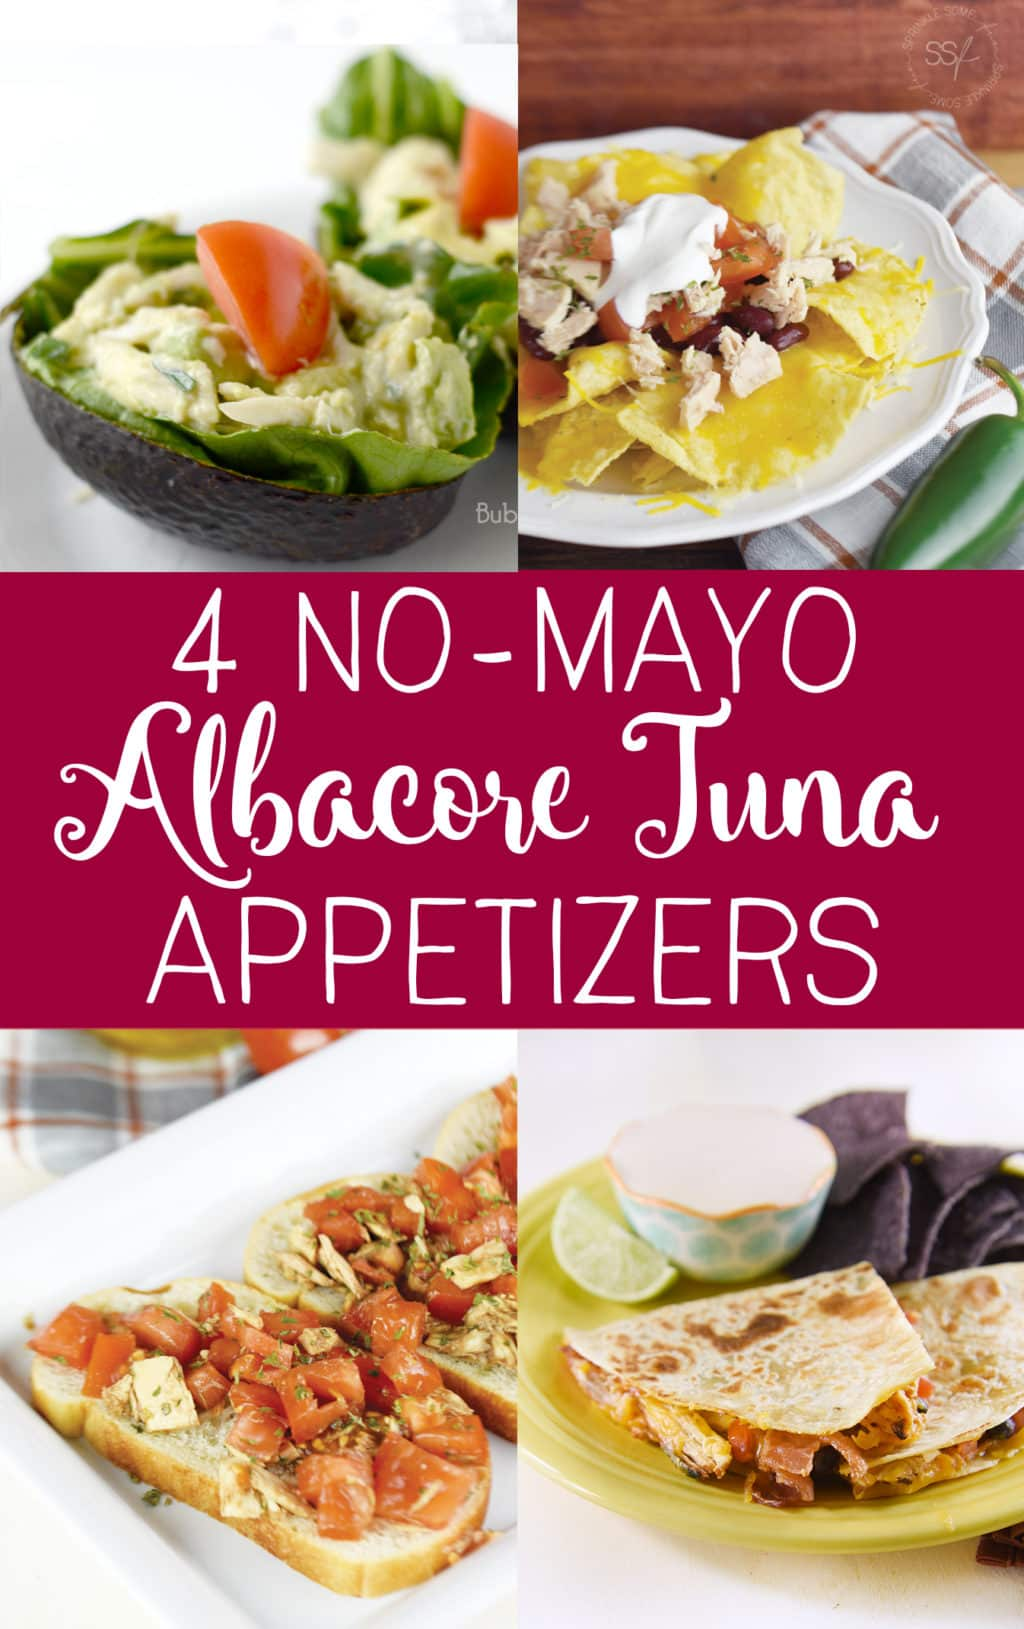 4 No Mayo Albacore Tuna Appetizers! Use these great ideas for tuna that are totally unexpected!